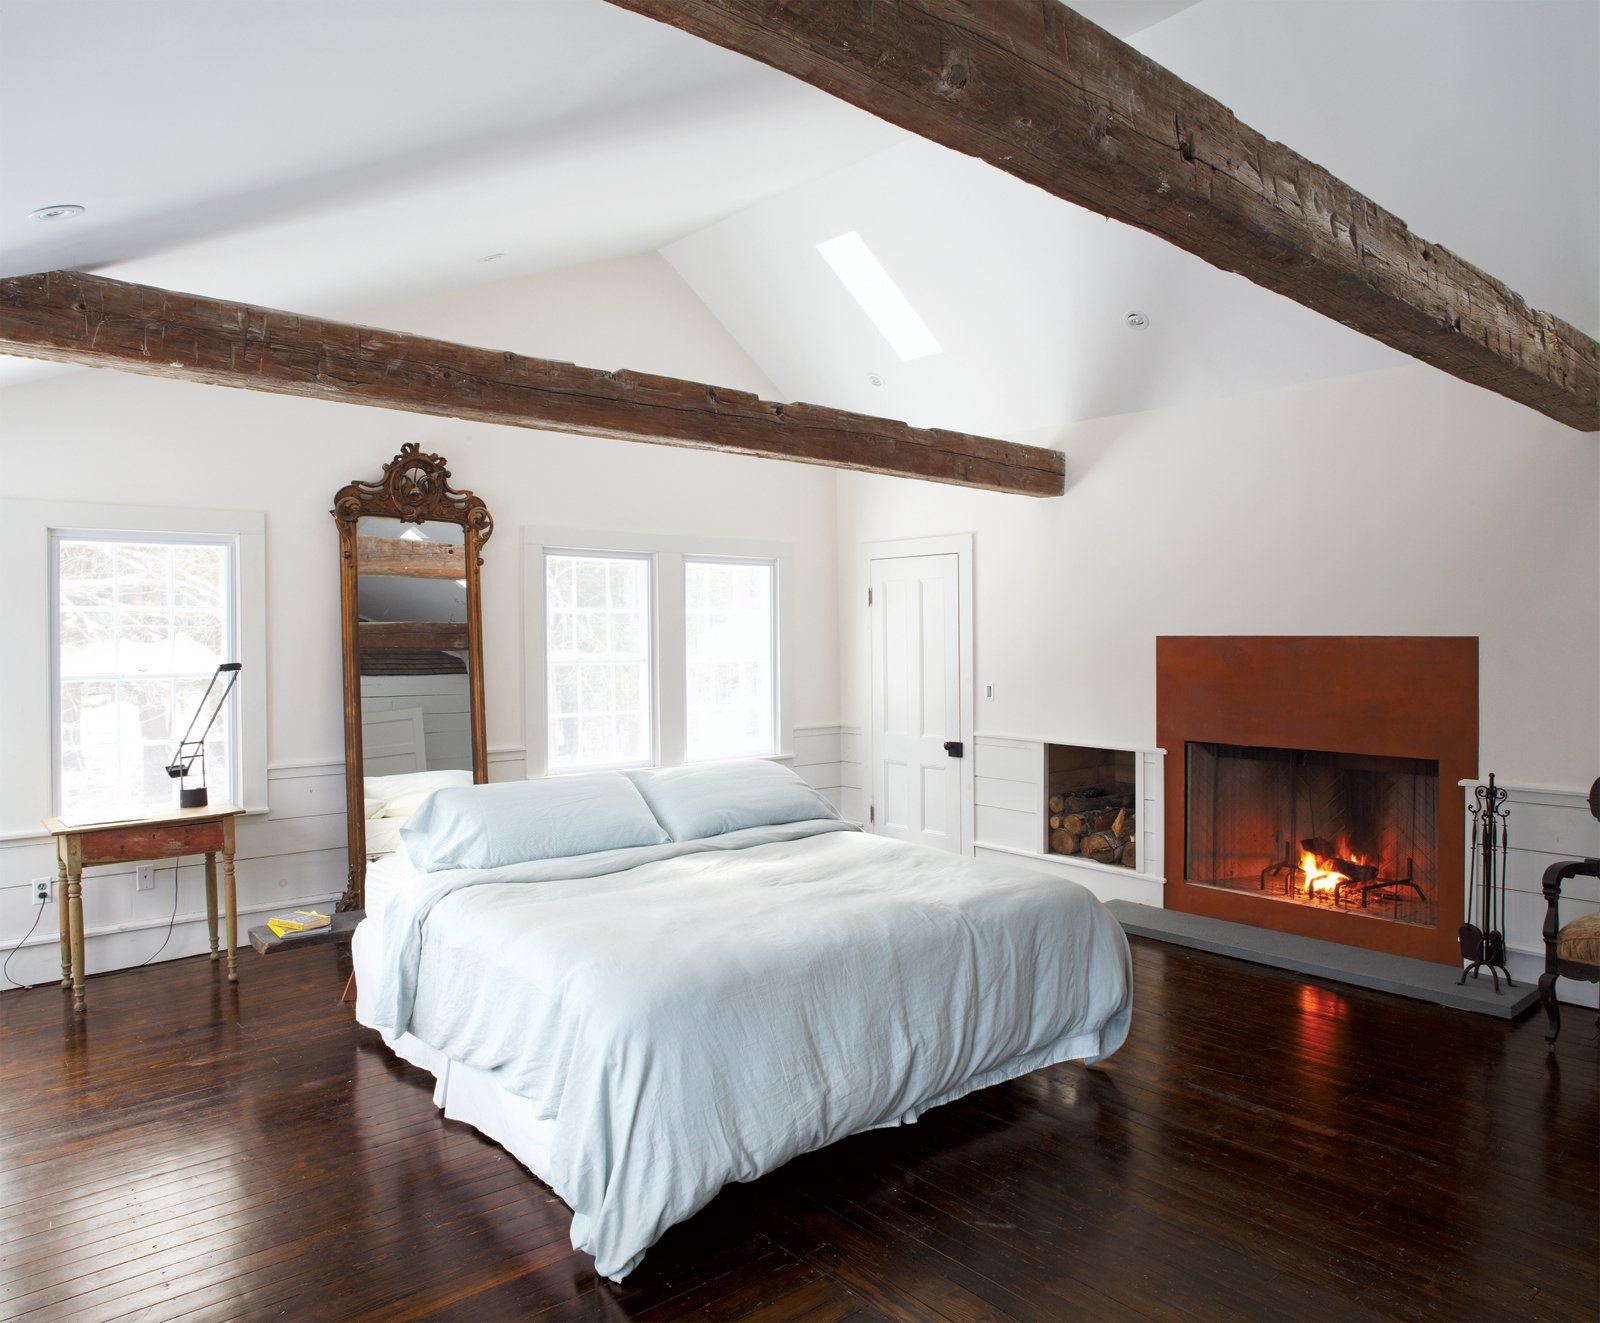 Bedroom, Bed, and Dark Hardwood Floor At a renovated farmhouse on a 19th-century homestead, a gas fireplace fronted in weathered steel warms up the lofty master bedroom, whose spare decor is framed with beams discovered in a Pennsylvania barn. The Tizio desk lamp is by Artemide.  Modern Designs Featuring Exposed Beams by Megan Hamaker from Hope Floats